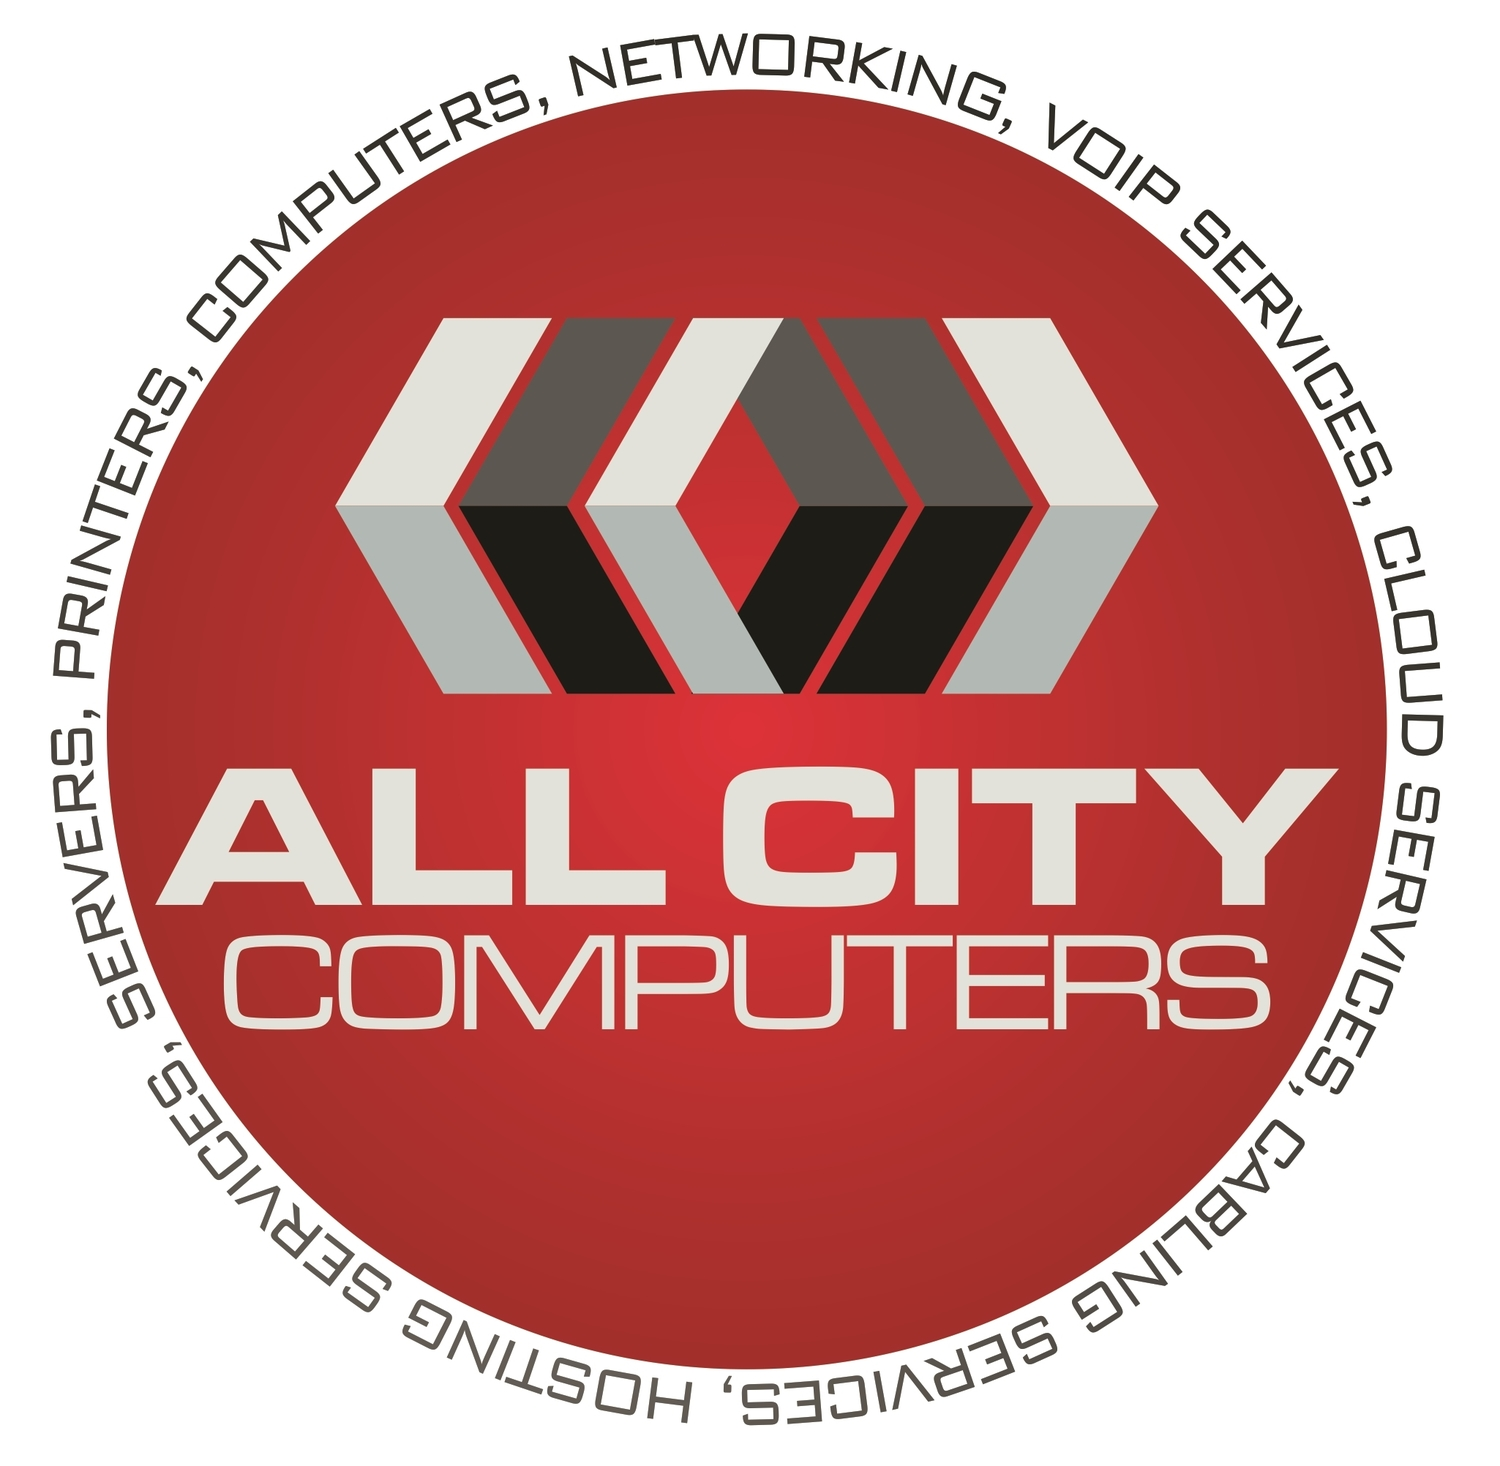 All City Computers - Los Angeles County Computer Networking Support Services for Small Business